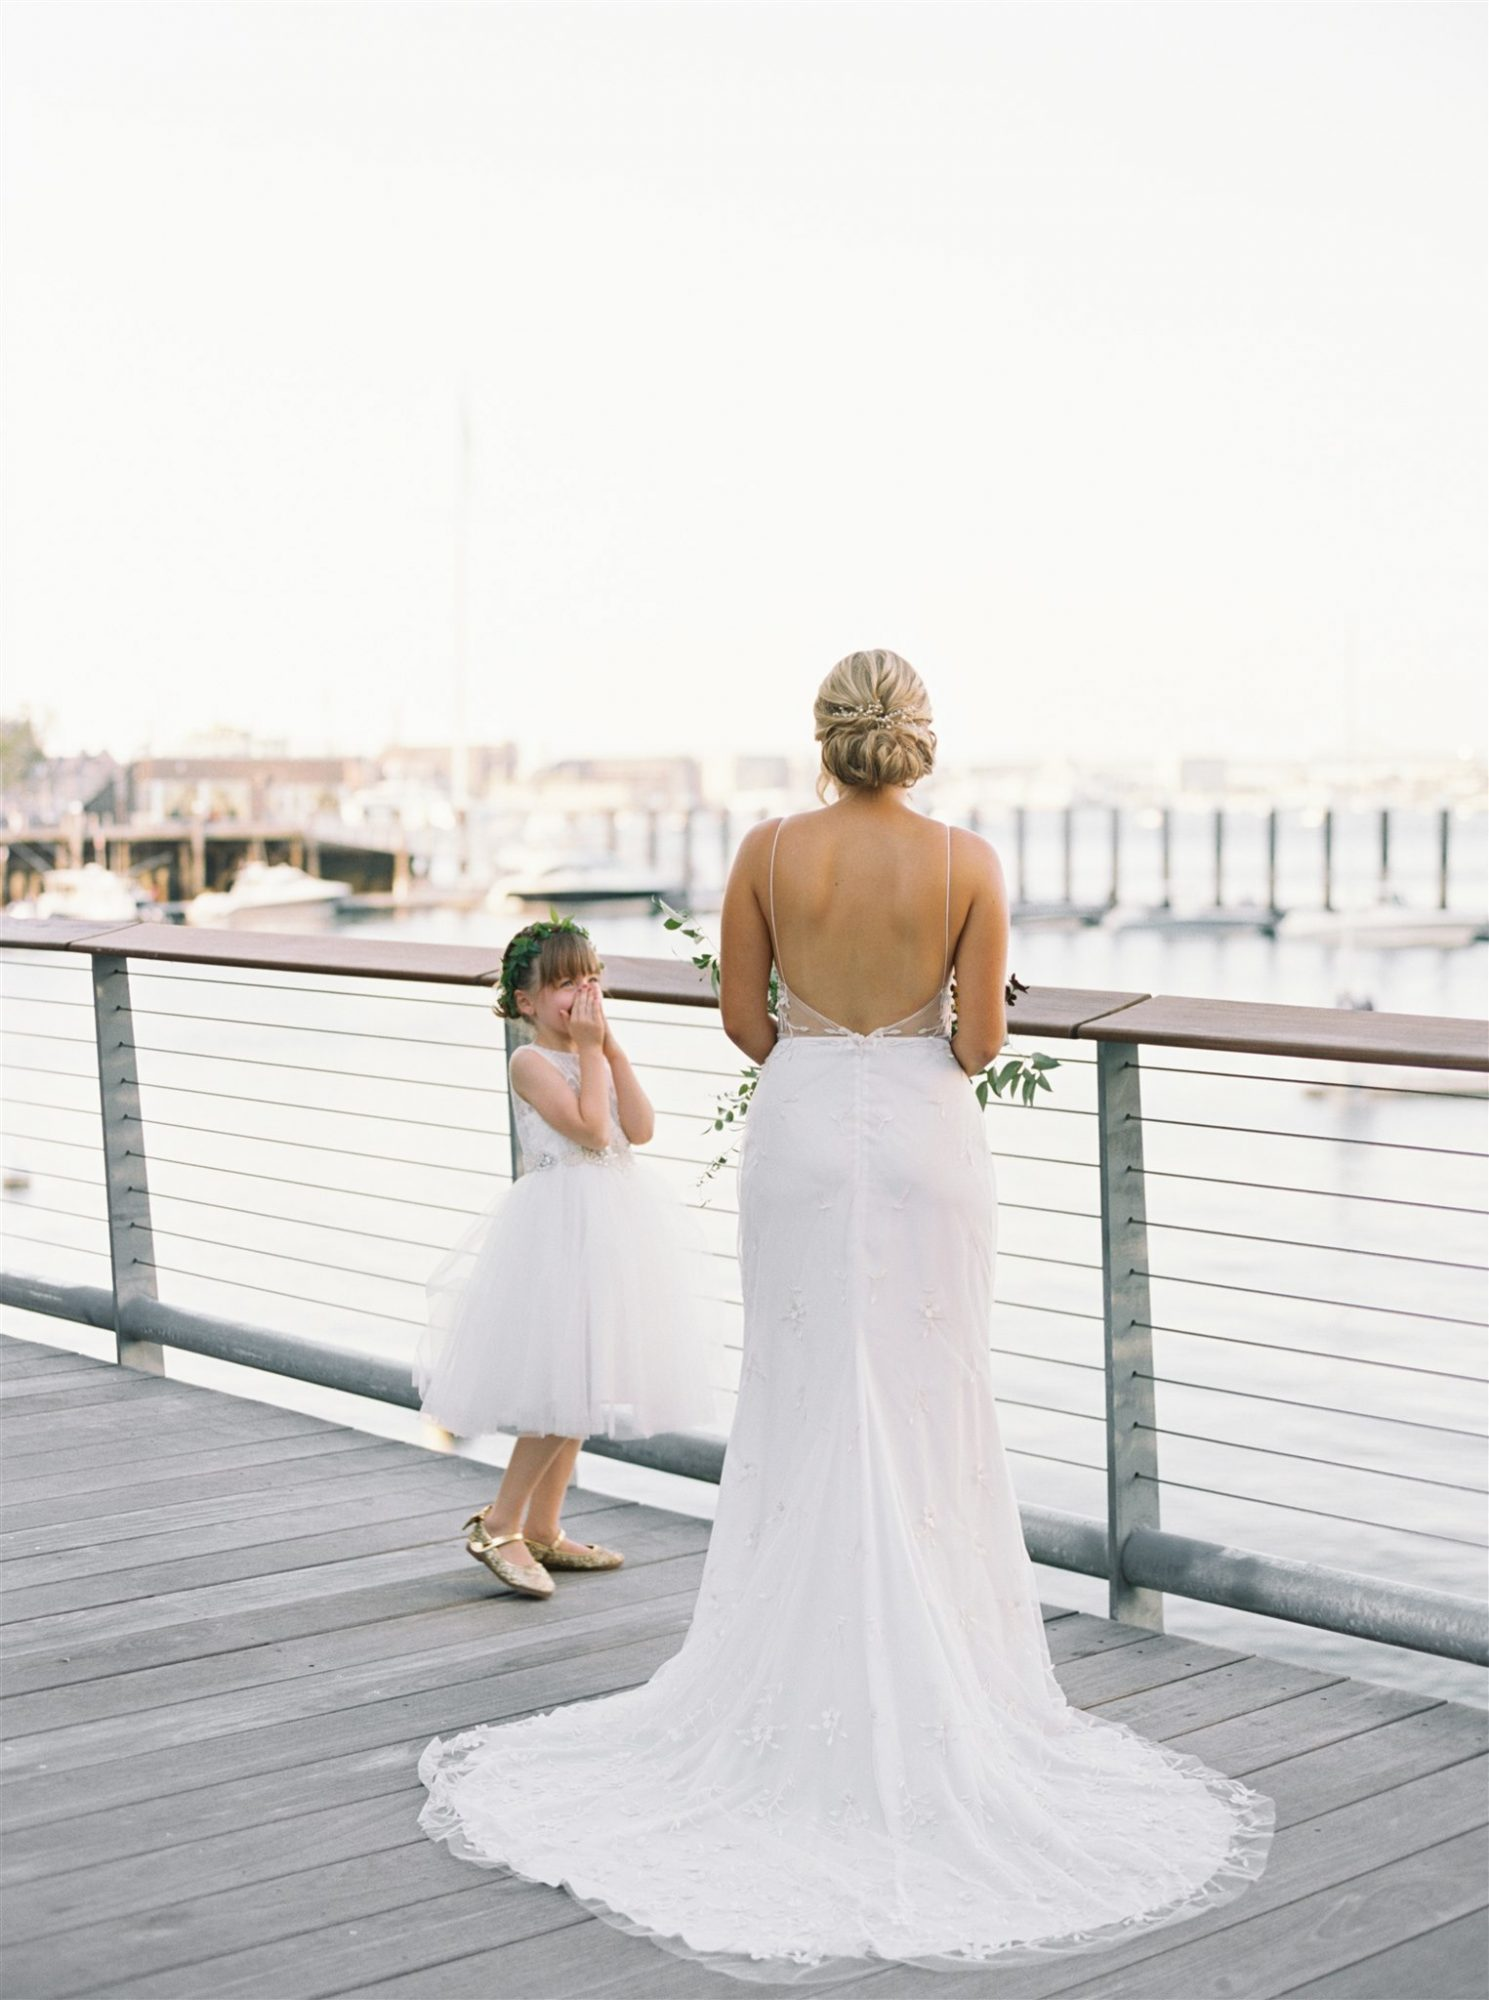 flower girl and bride on deck looking out over water